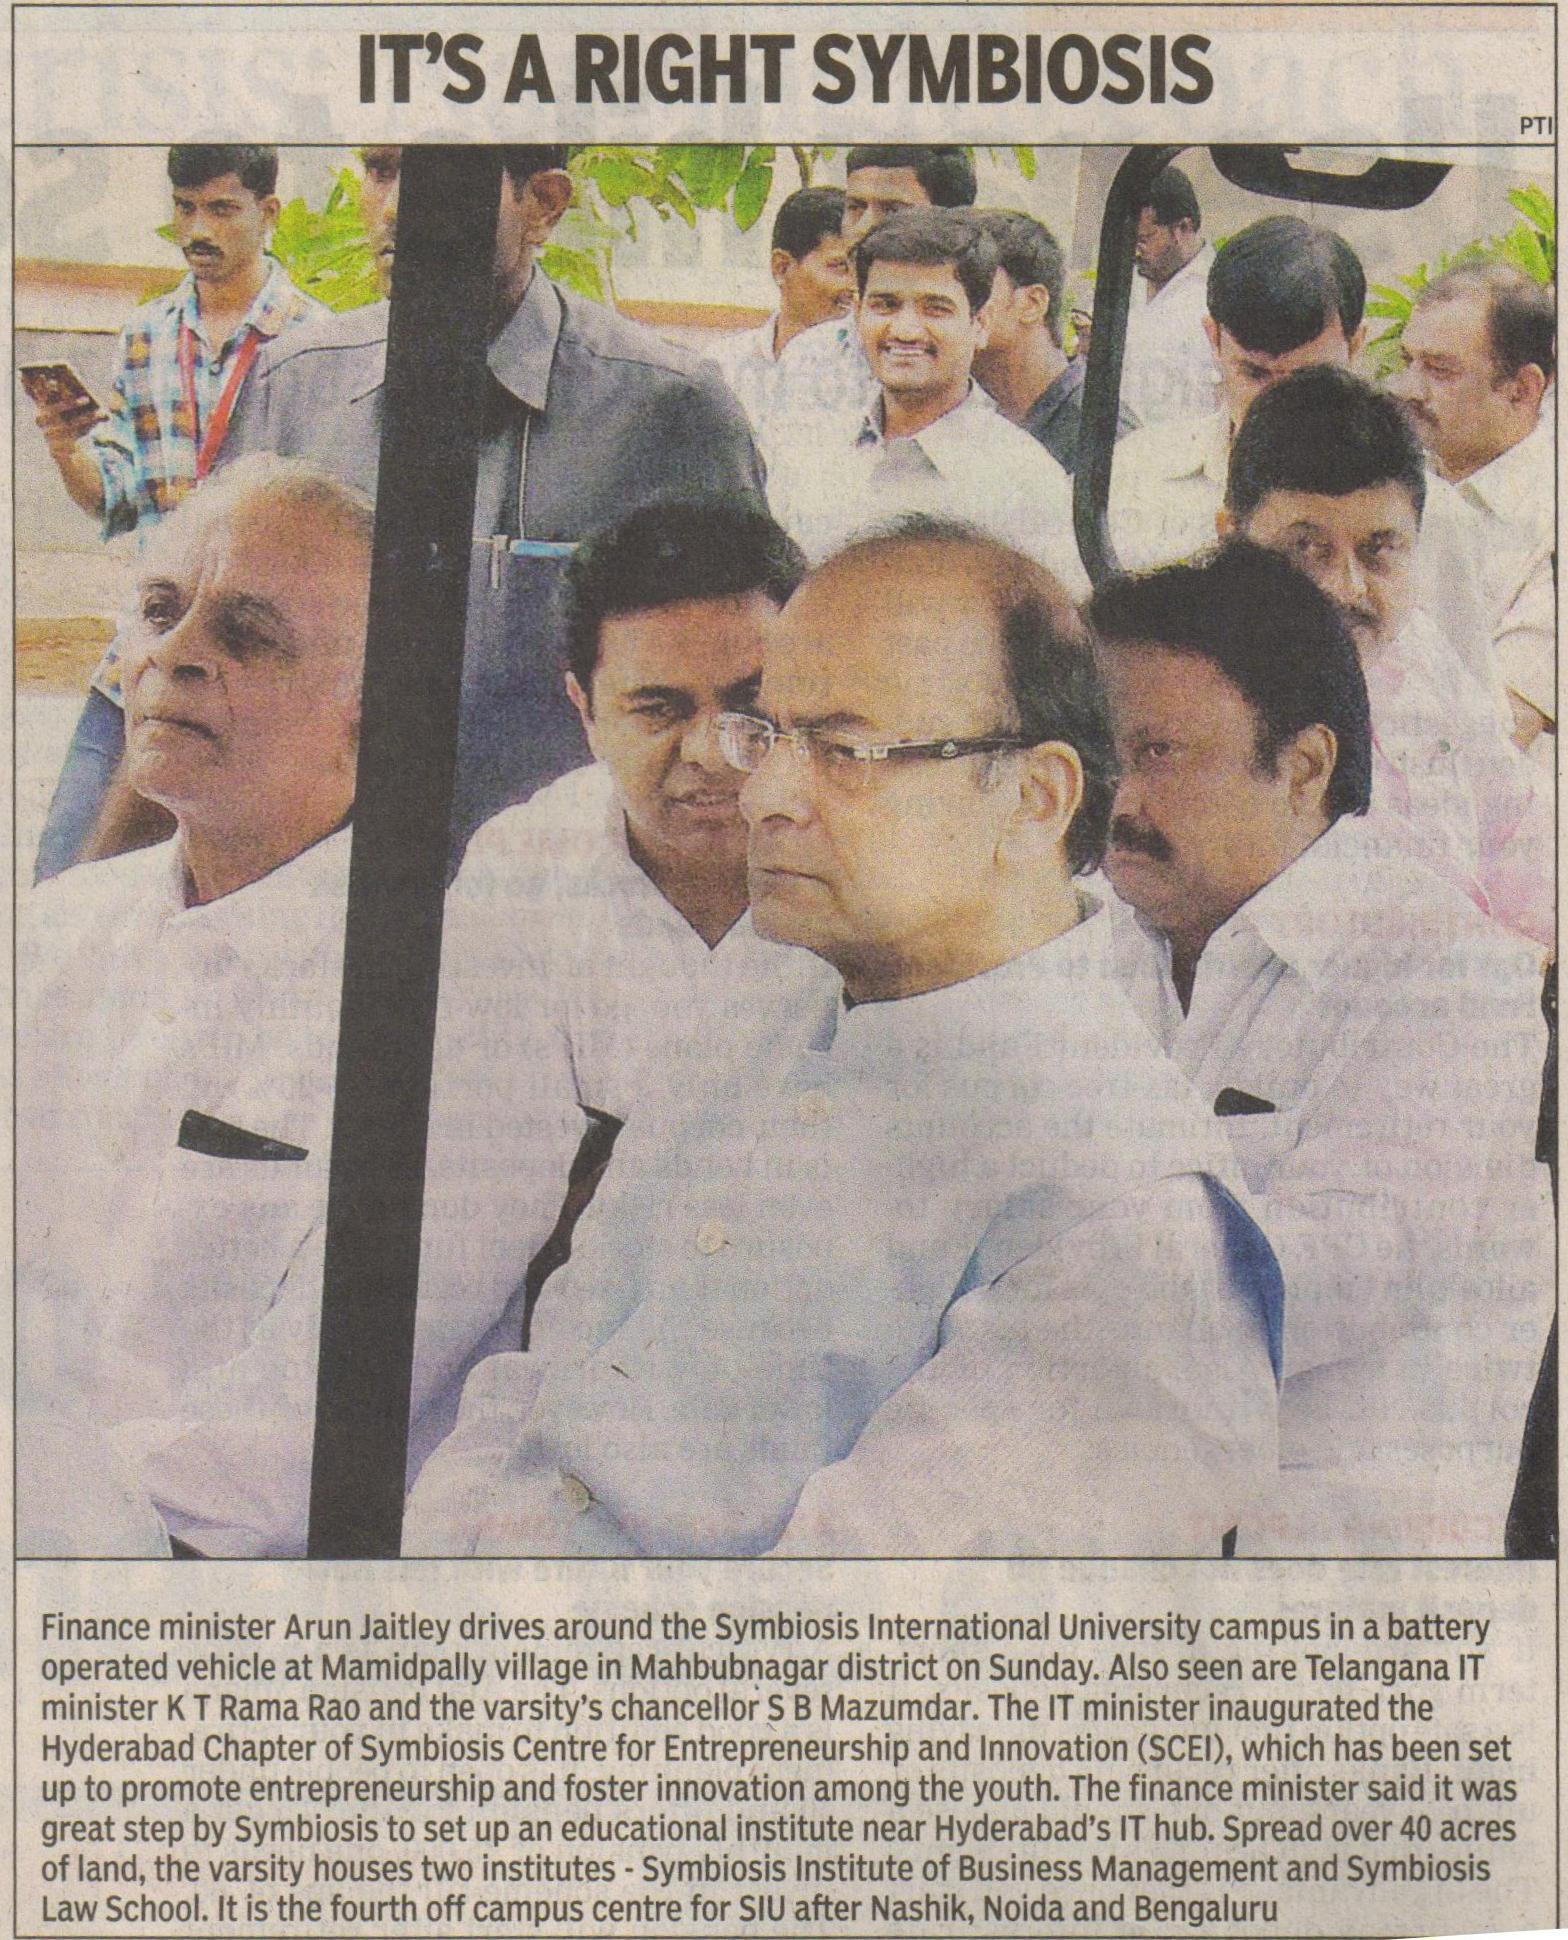 Shree Arun Jaitley at SIBM Hyderabad